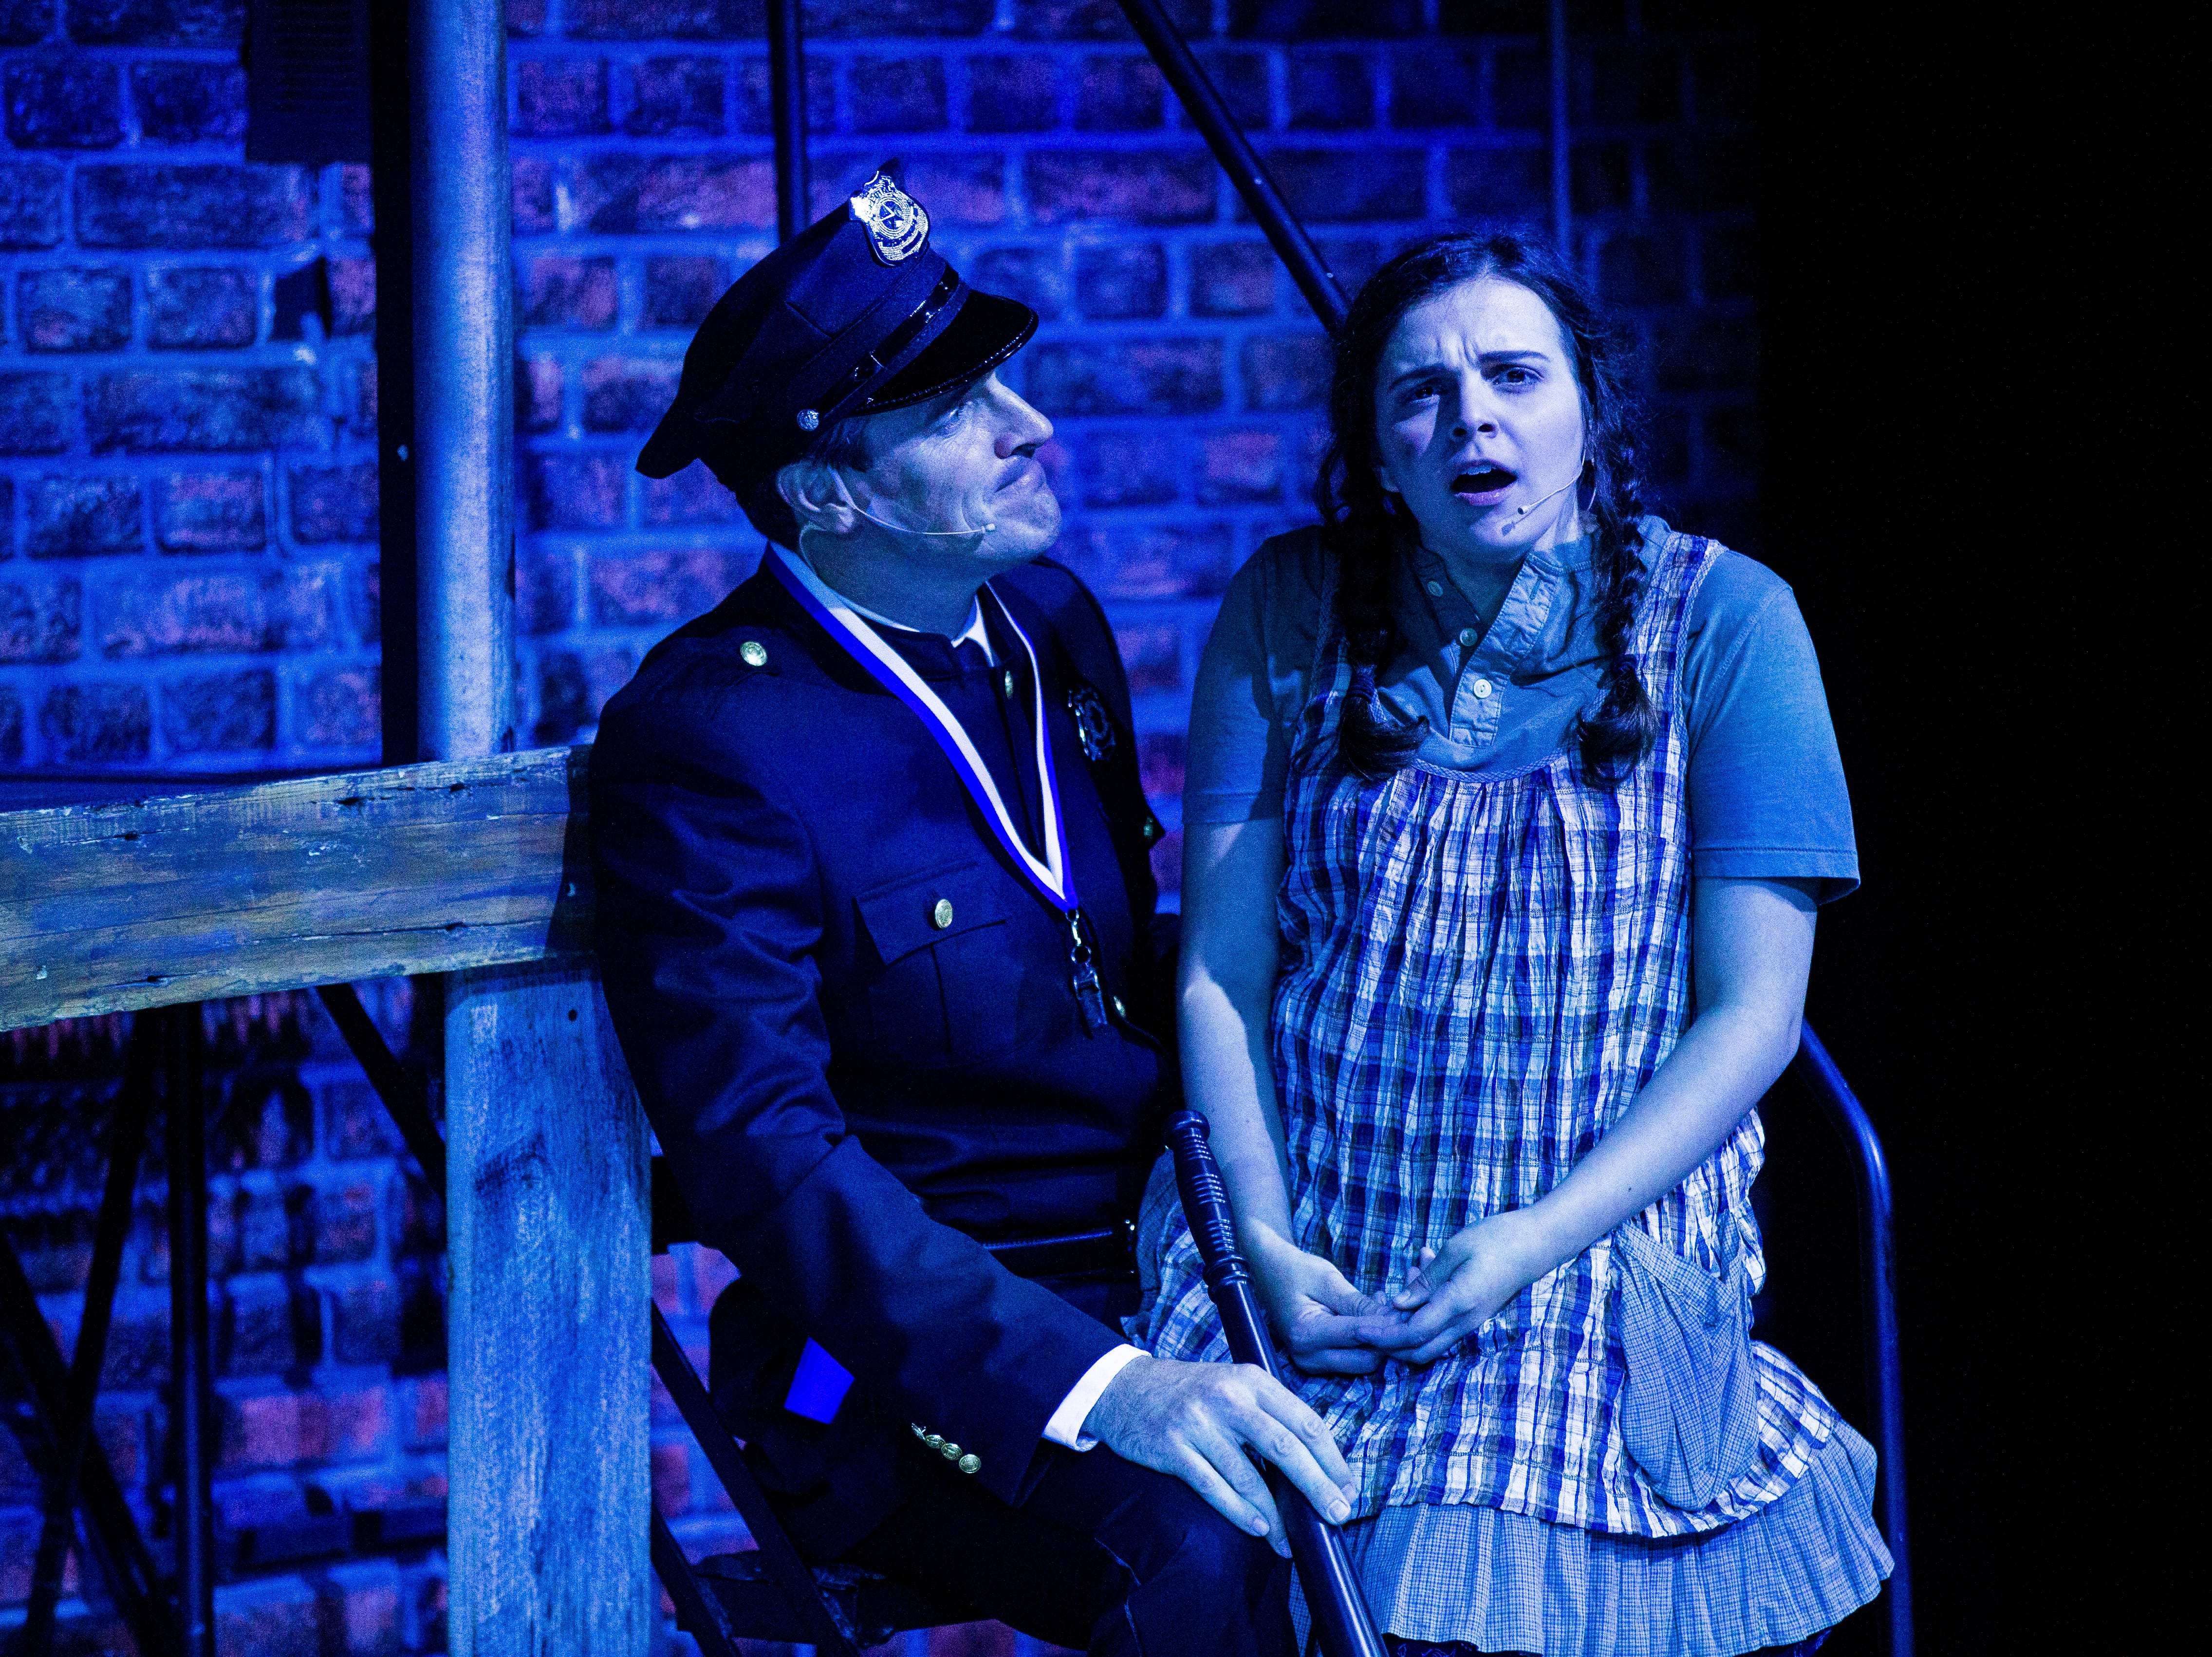 Gerritt VanderMerr, left, as Officer Lockstock, and Rachel Salerno, as Little Sally, rehearse a scene together for TheatreZone's upcoming production of Urinetown in collaboration with Florida Gulf Coast University in Fort Myers on Monday, Oct. 8, 2018. Urinetown is a hilarious musical satire of the legal system, capitalism, social irresponsibility, populism, bureaucracy, corporate mismanagement, municipal politics and musical theatre itself.